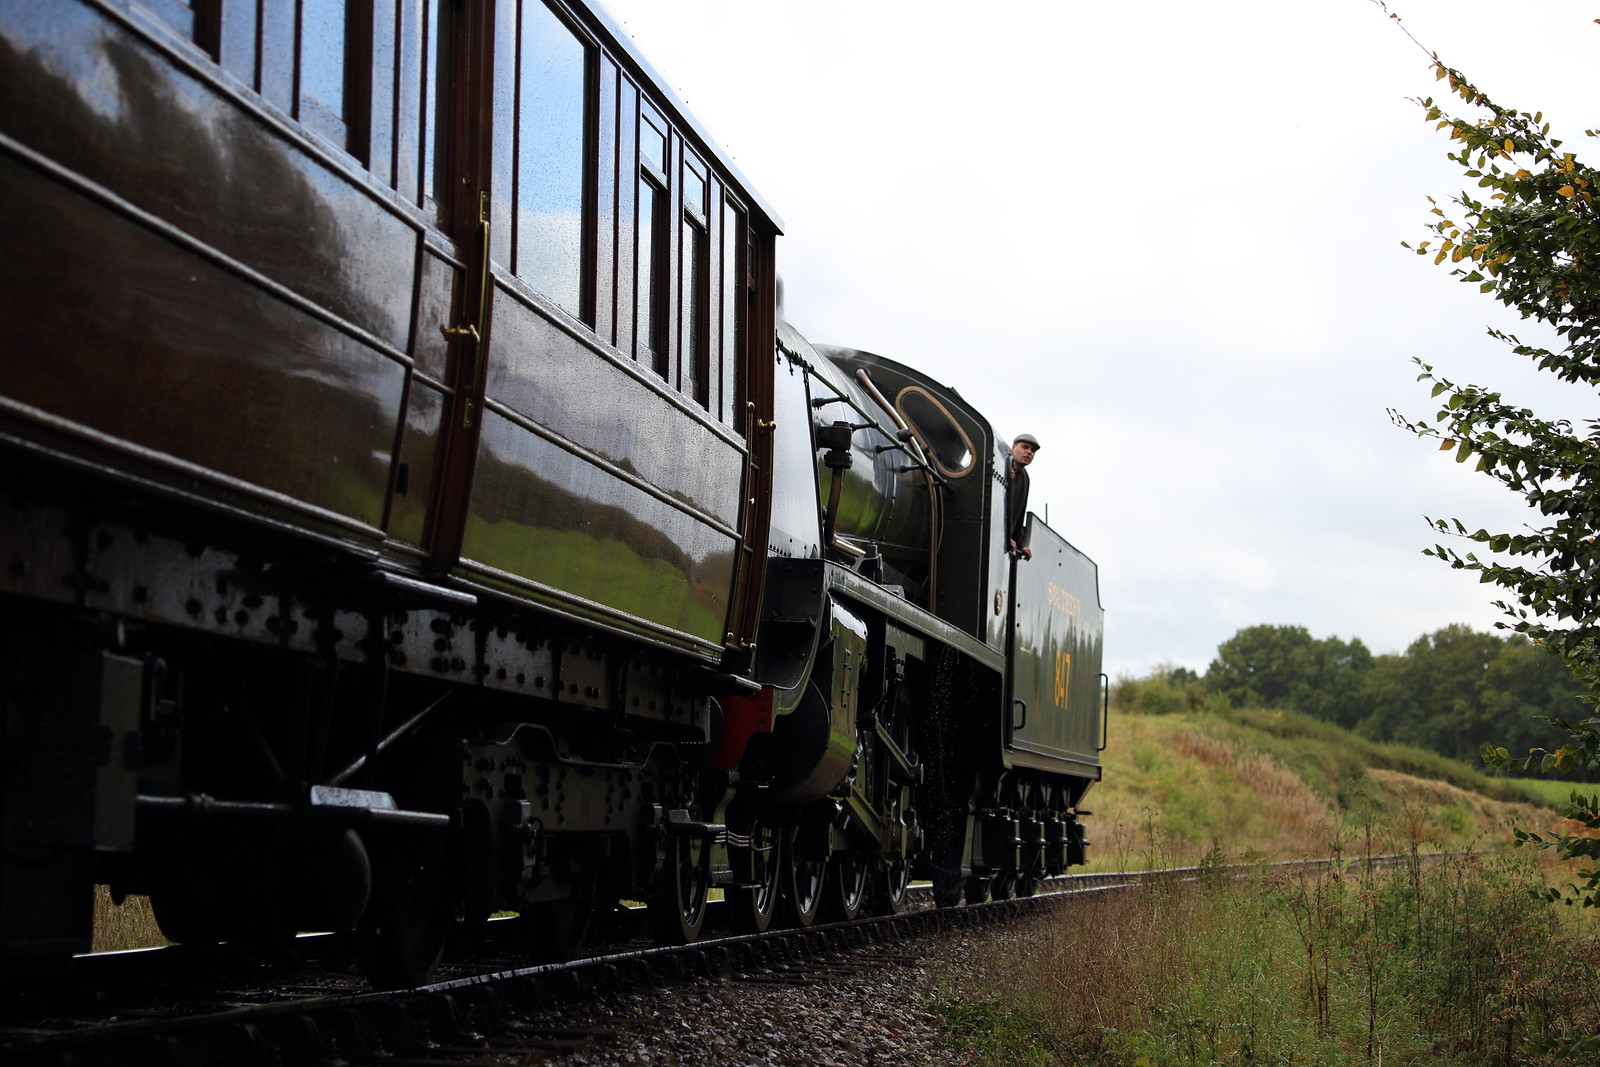 S15 puffing by on Bluebell Railway